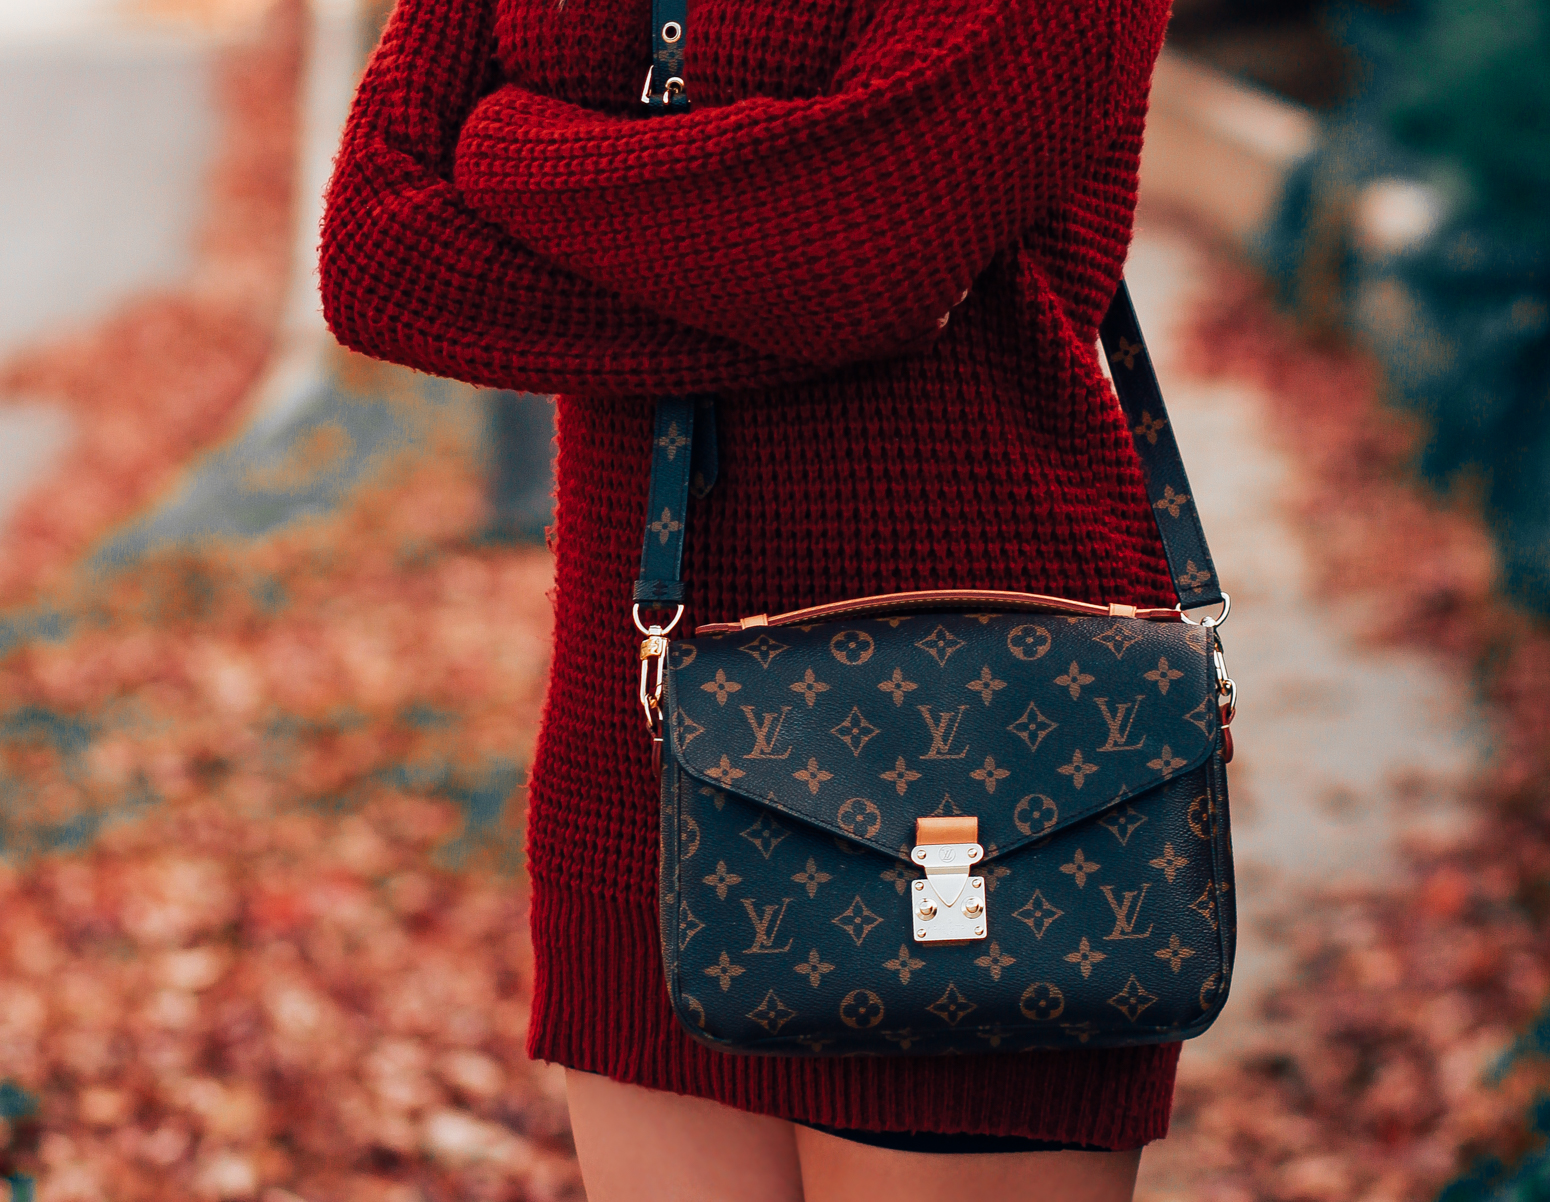 Blondie in the City | Fall & Winter Fashion | Louis Vuitton Pochette Metis